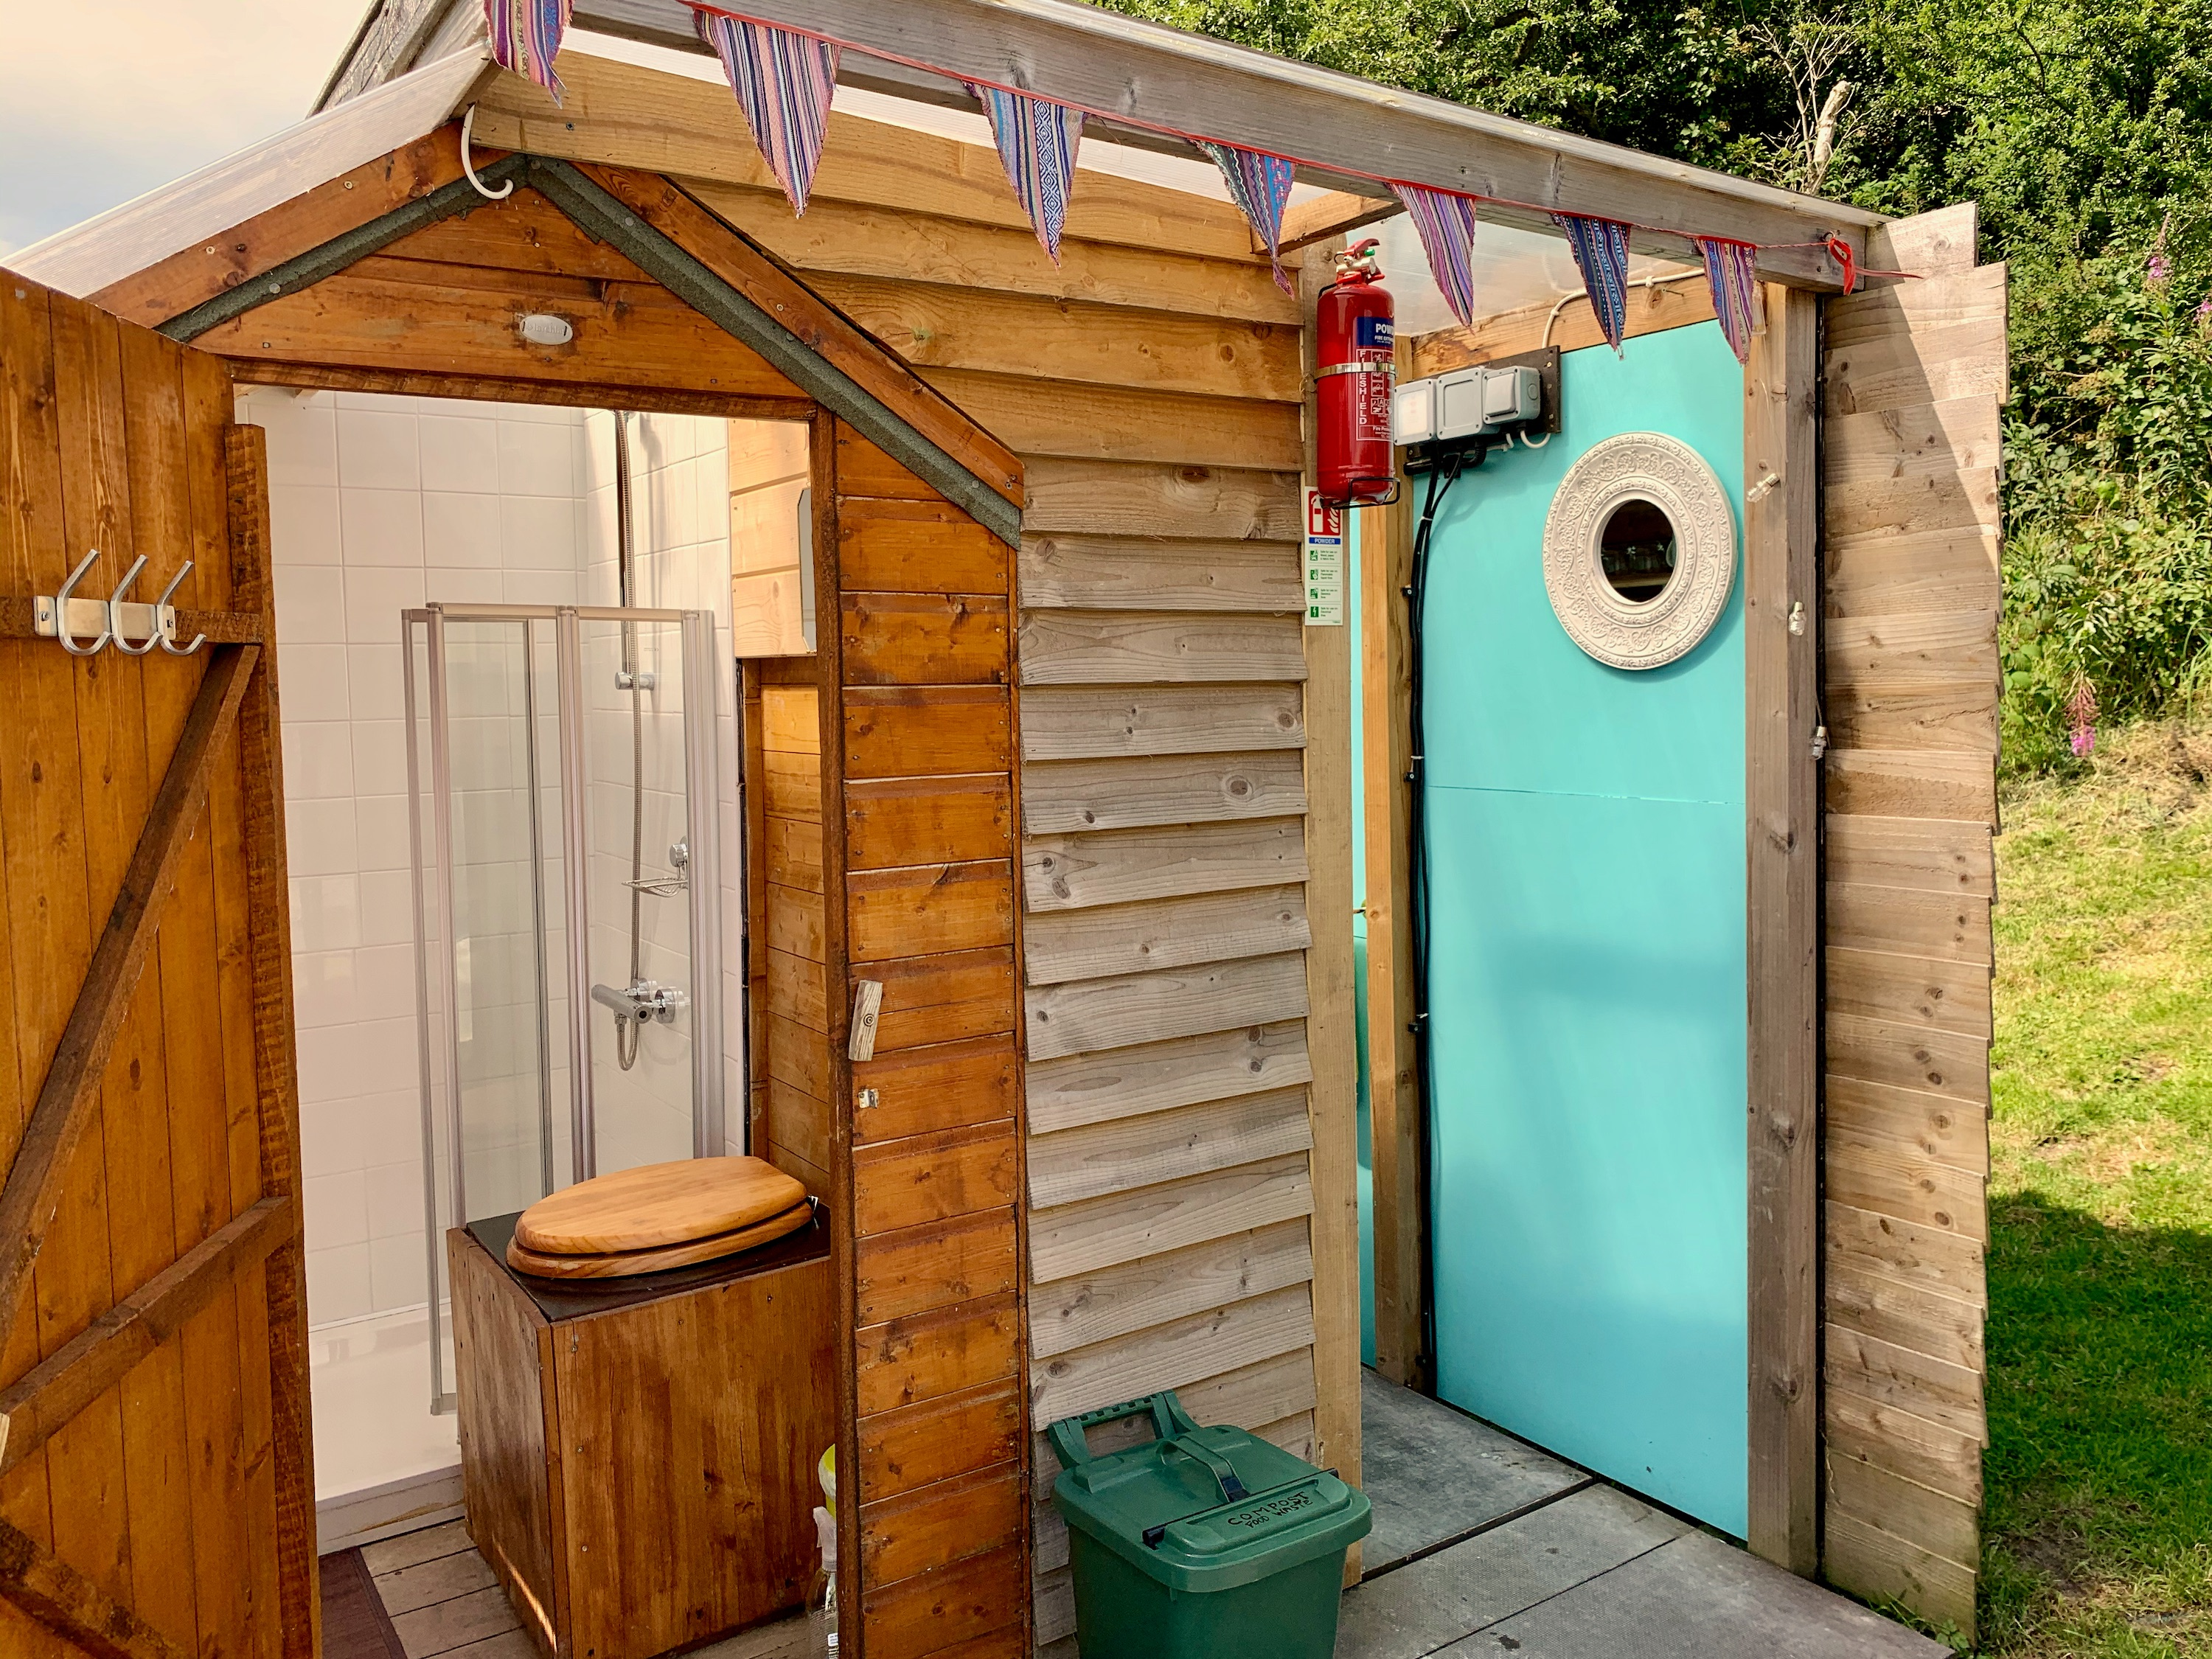 Ty crwn mawr yurt bathroom and kitchen shed off grid sustainable eco glampsite and glamping